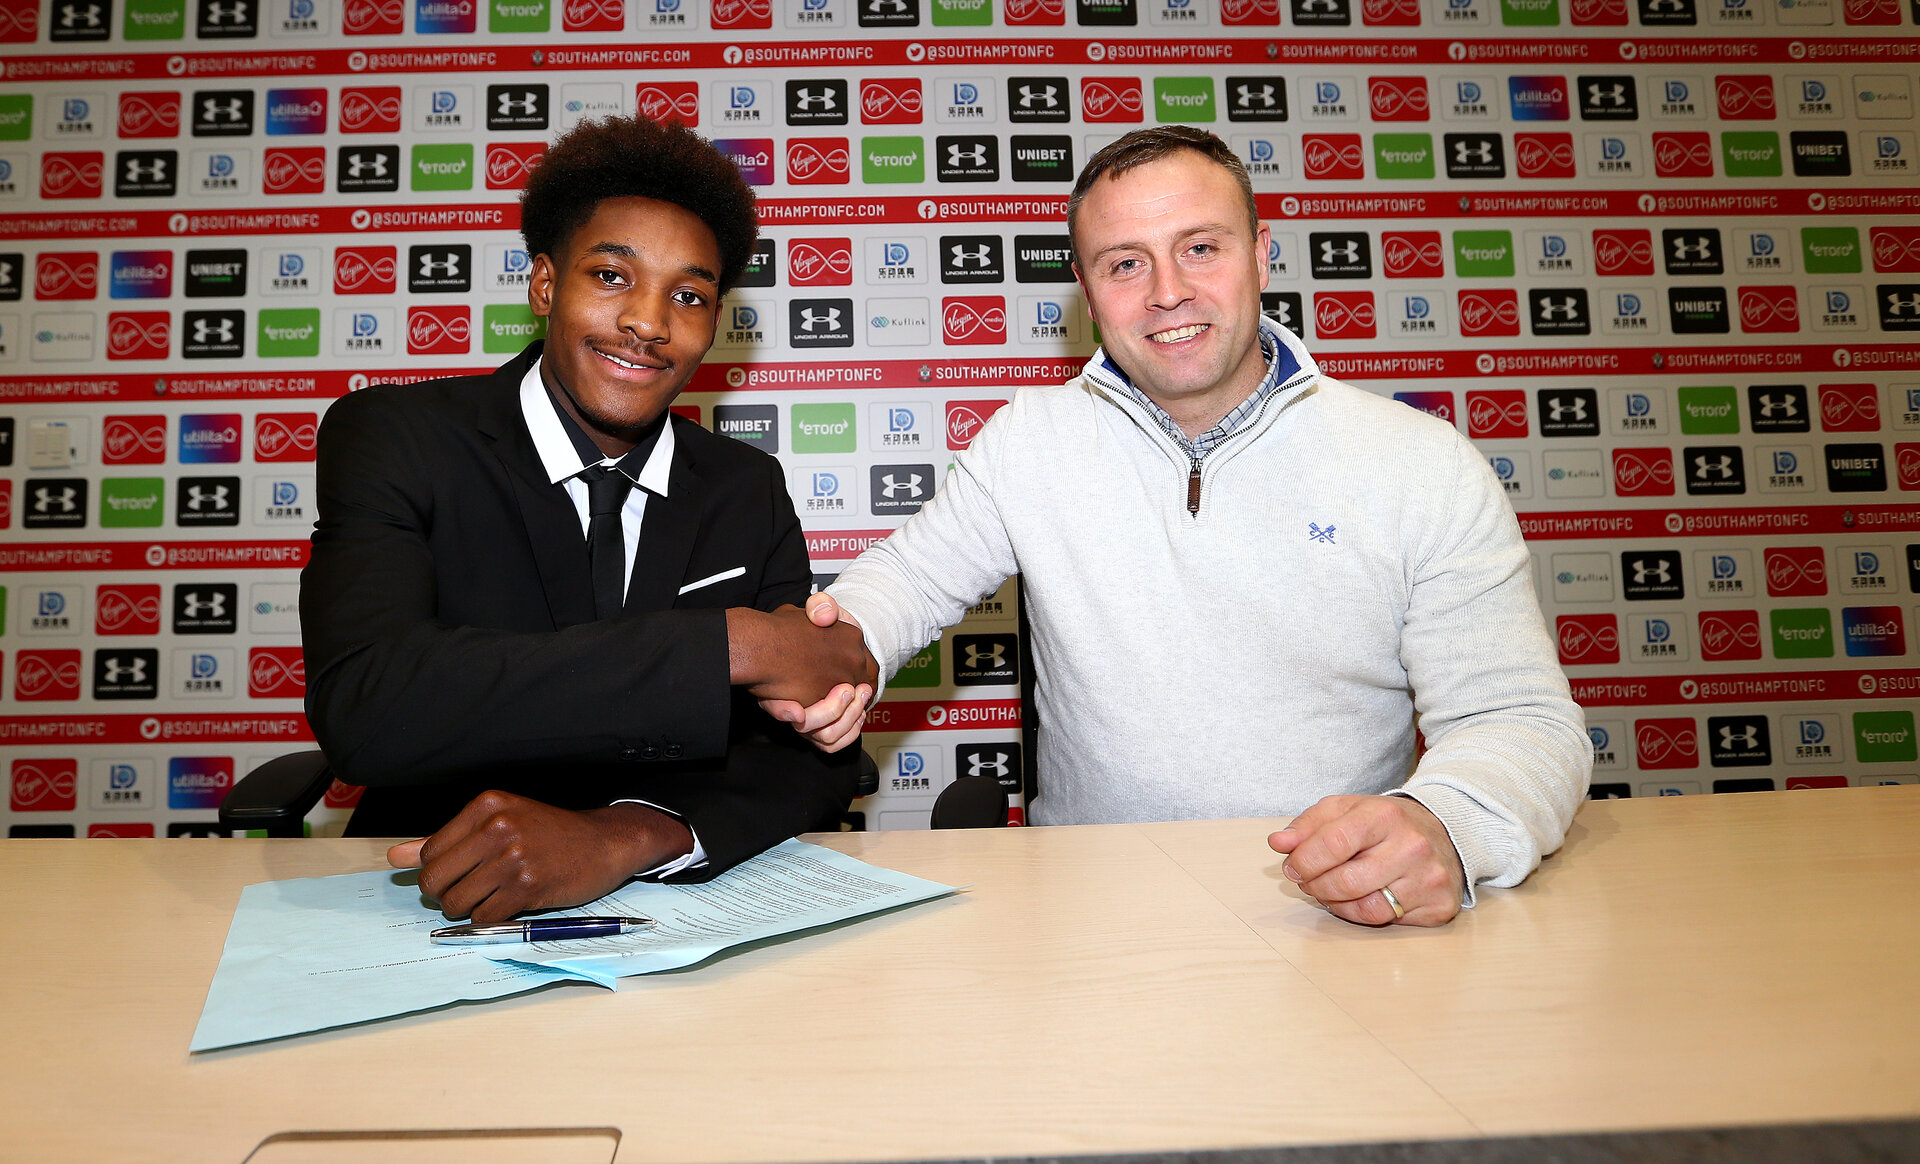 SOUTHAMPTON, ENGLAND - DECEMBER 02: Ramello Mitchell signs his first professional contract with Southampton FC, pictured with Academy Director Matt Hale, at the Staplewood Campus on December 02, 2019 in Southampton, England. (Photo by Matt Watson/Southampton FC via Getty Images)